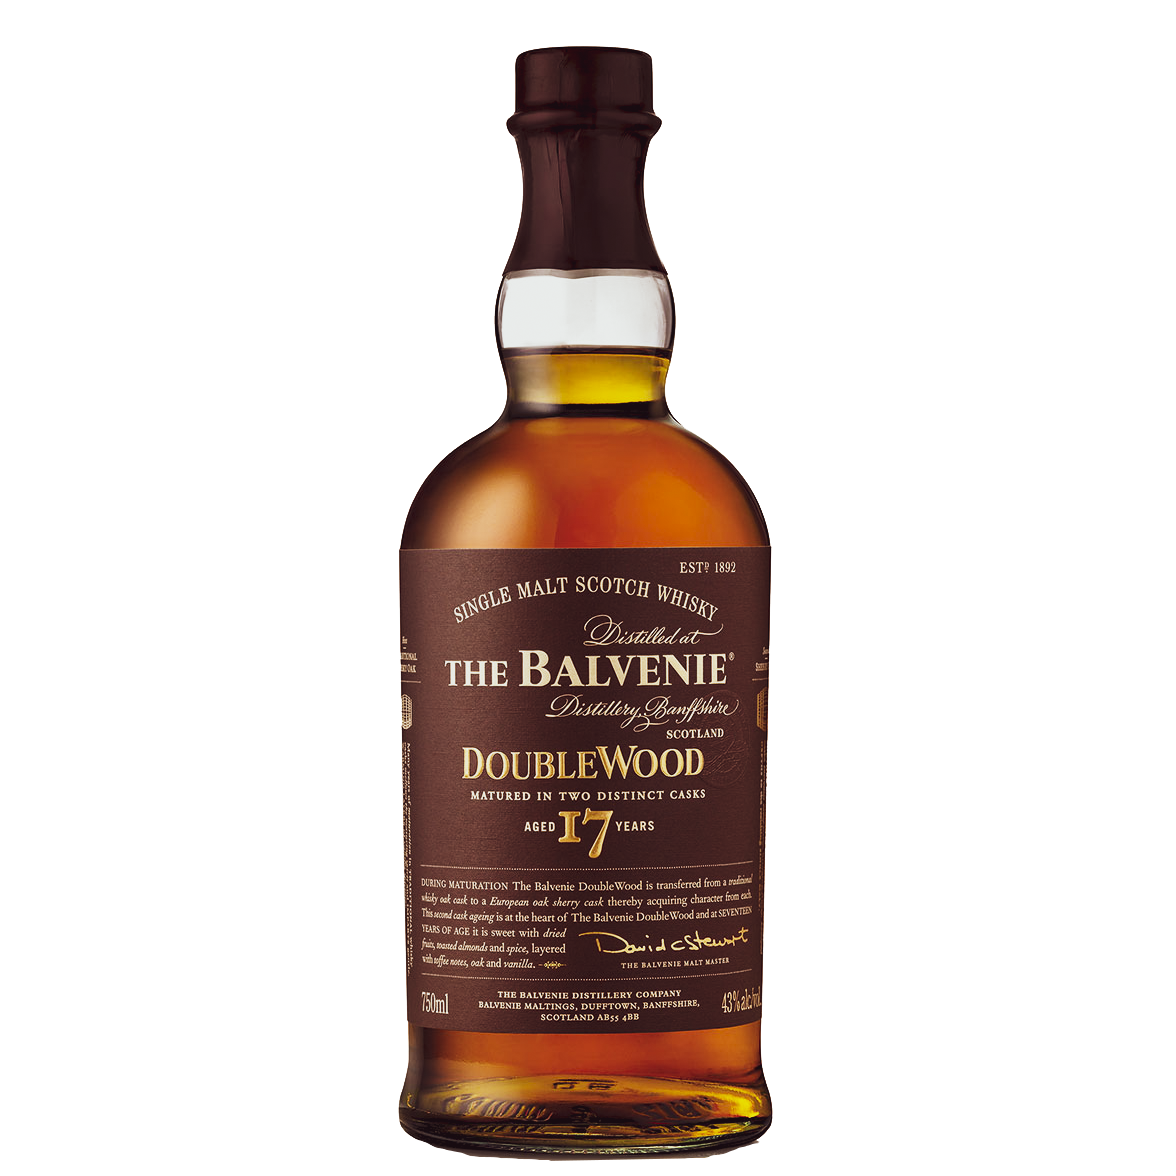 Balvenie 17 year old Doublewood Limited Release